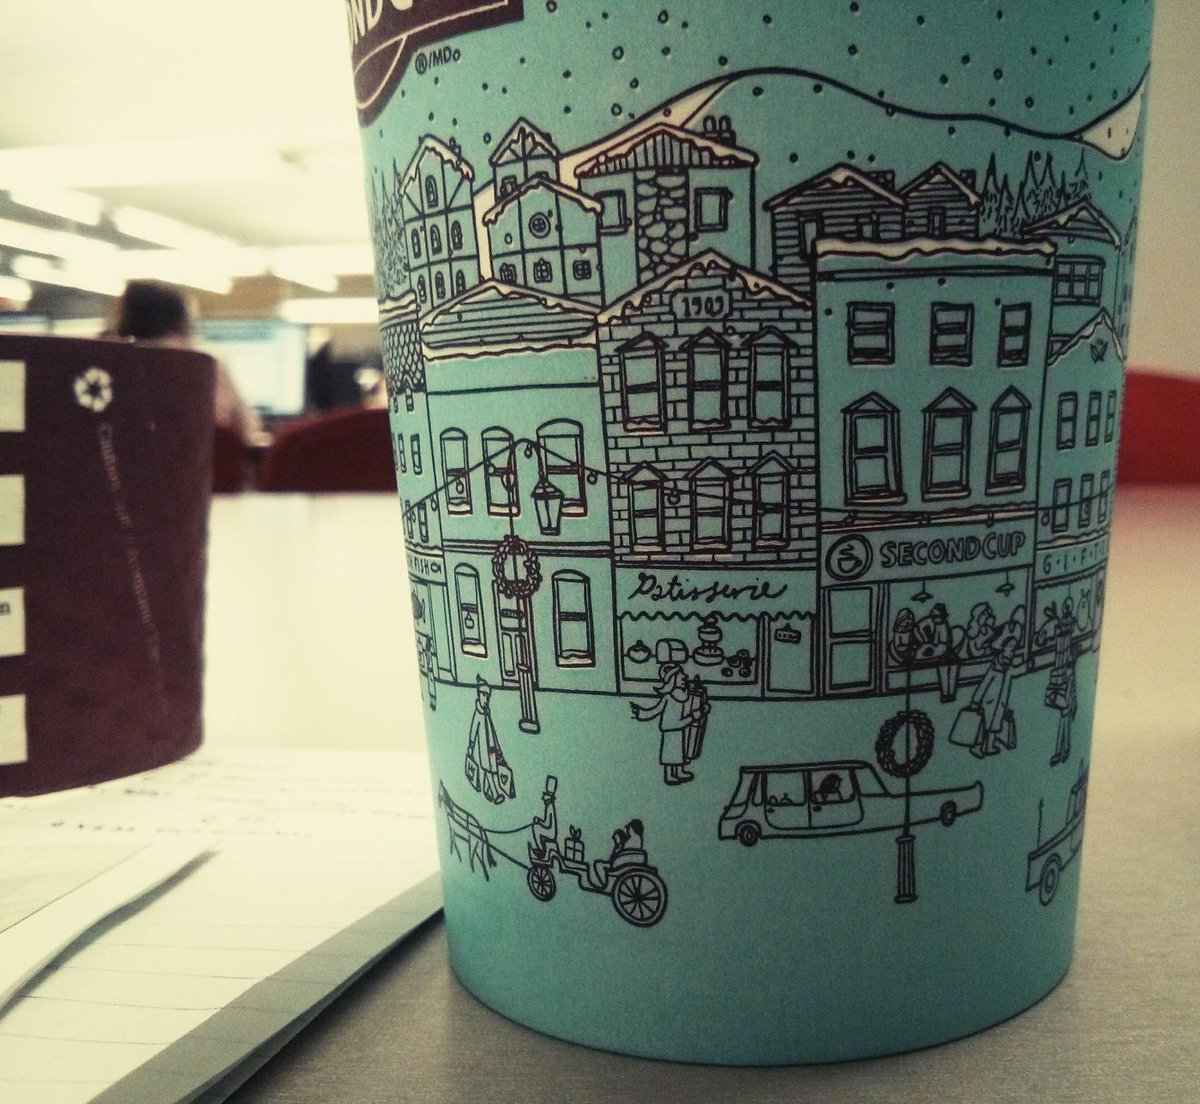 Renewed love for @secondcup :) <3 the new cup design http://t.co/l5wGrBtYFa